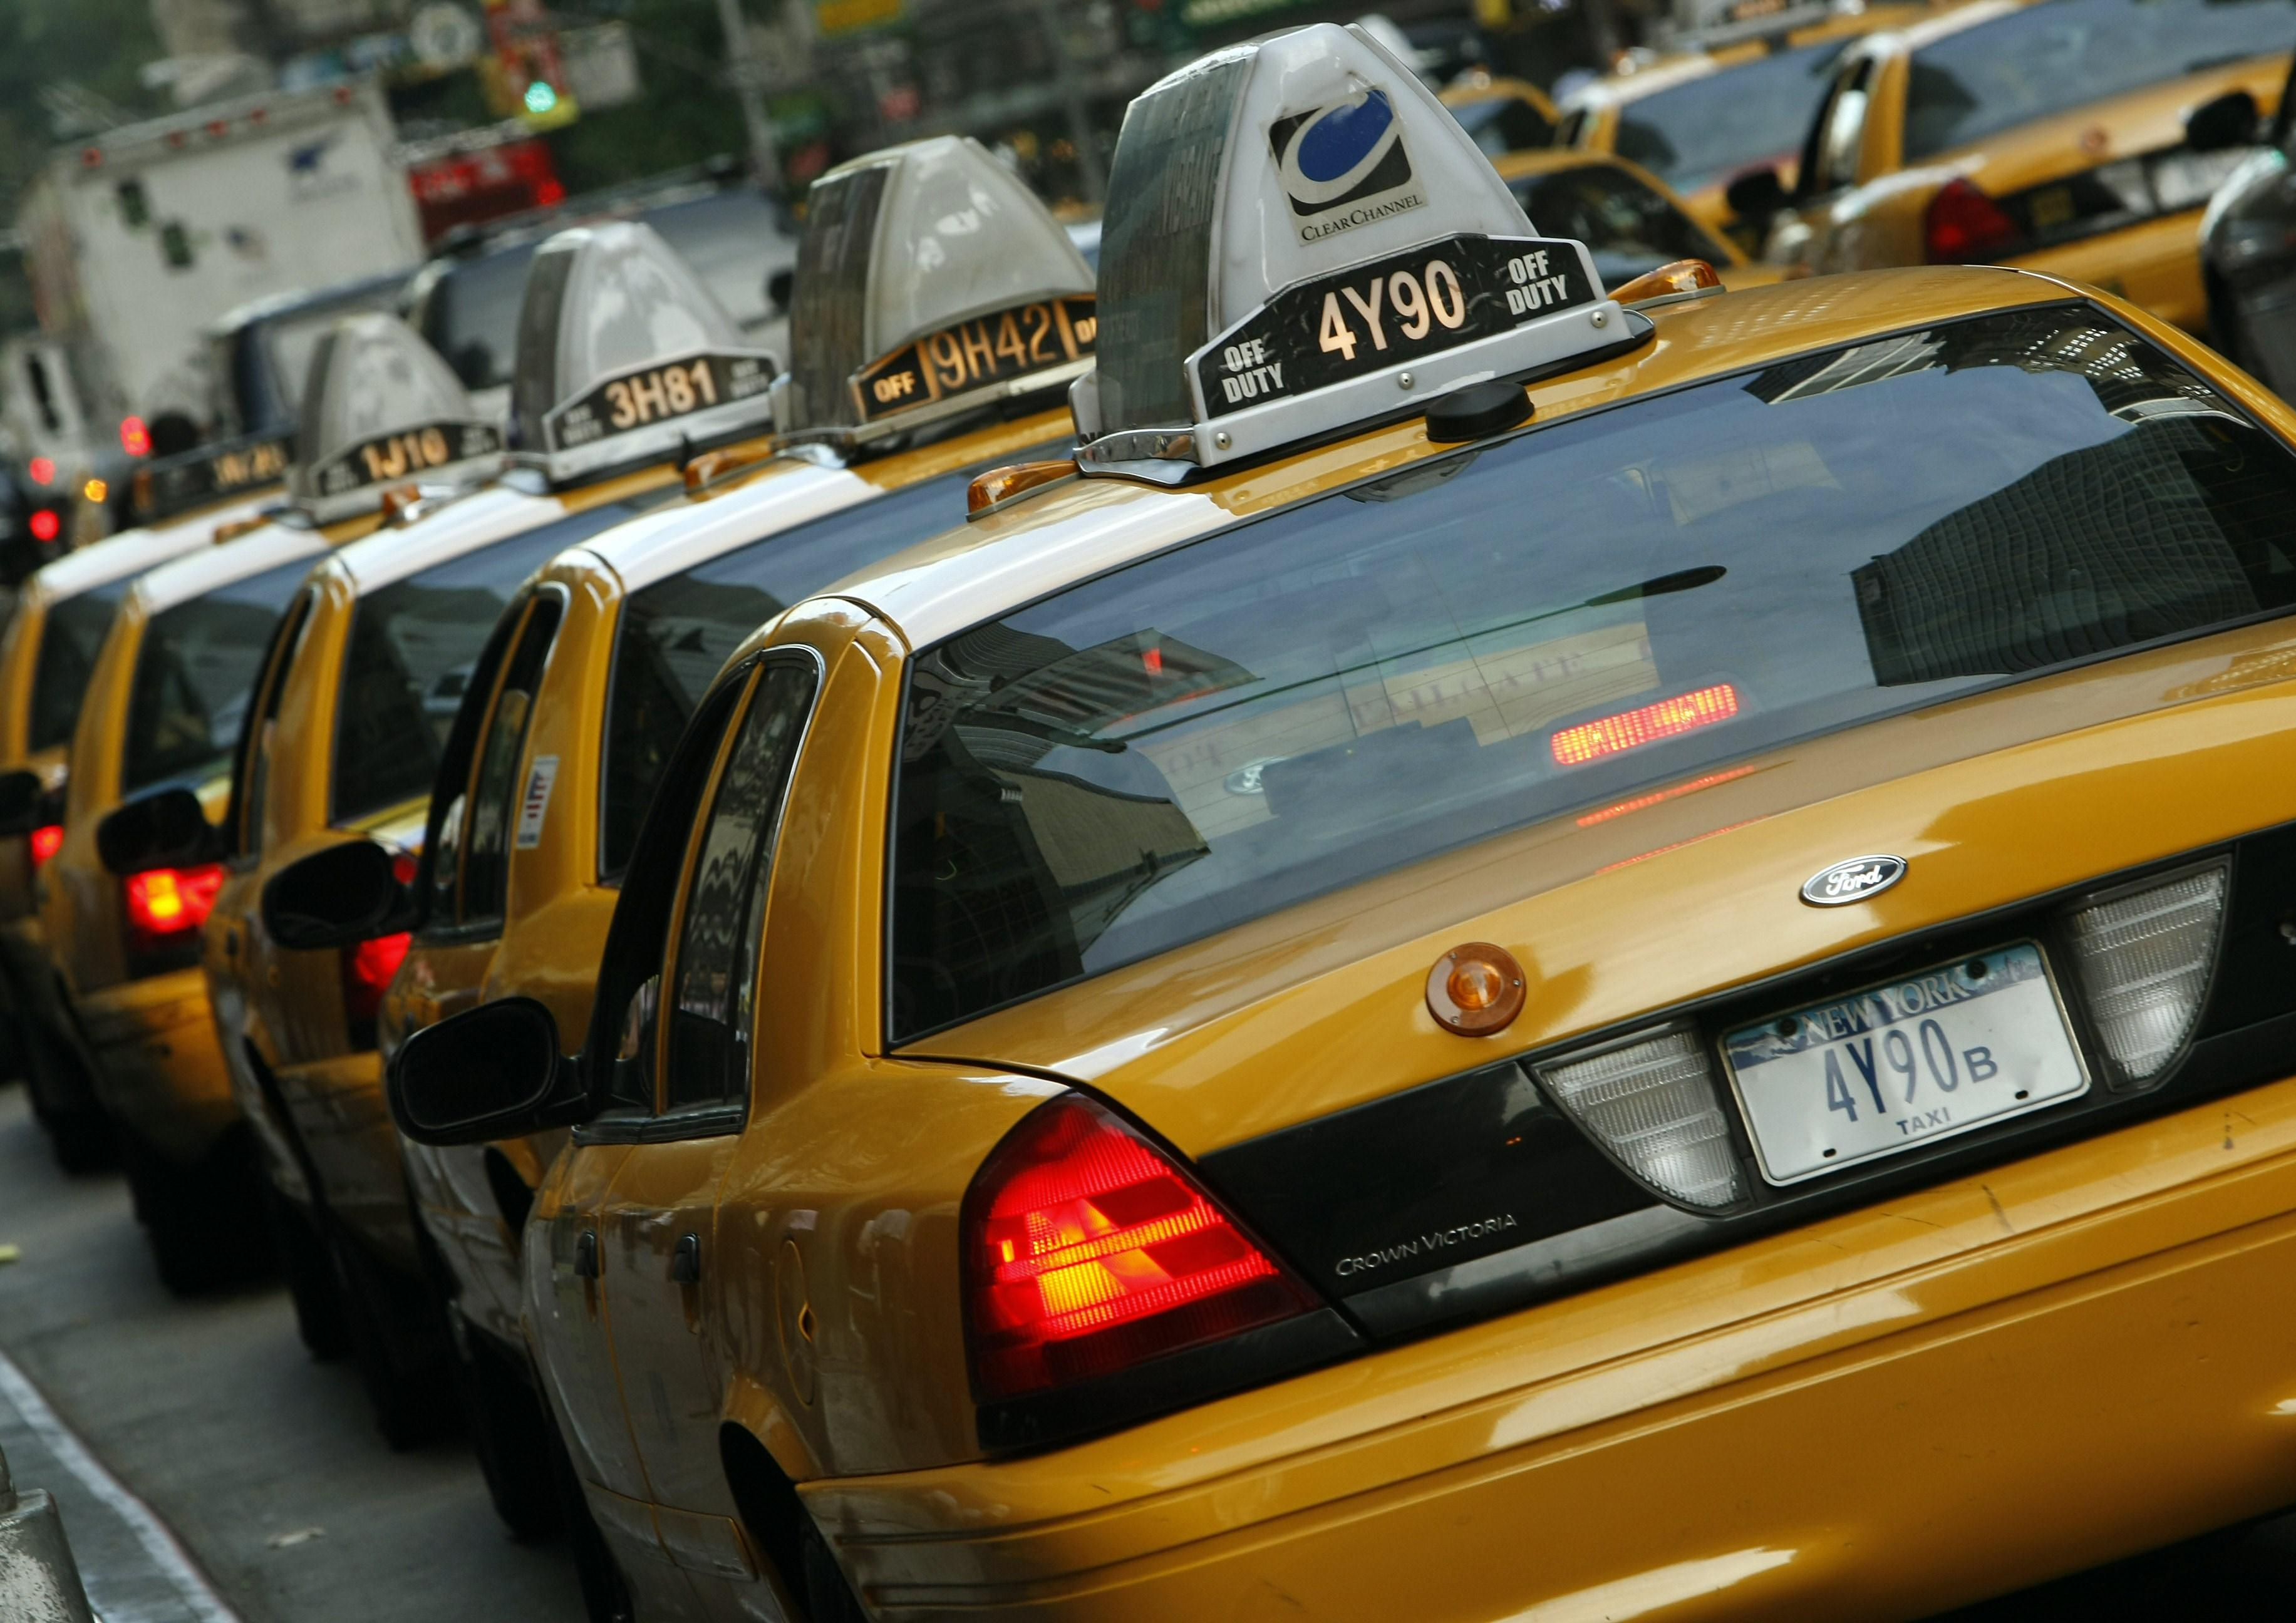 Uber CEO backs surcharge to aid struggling NYC taxi owners